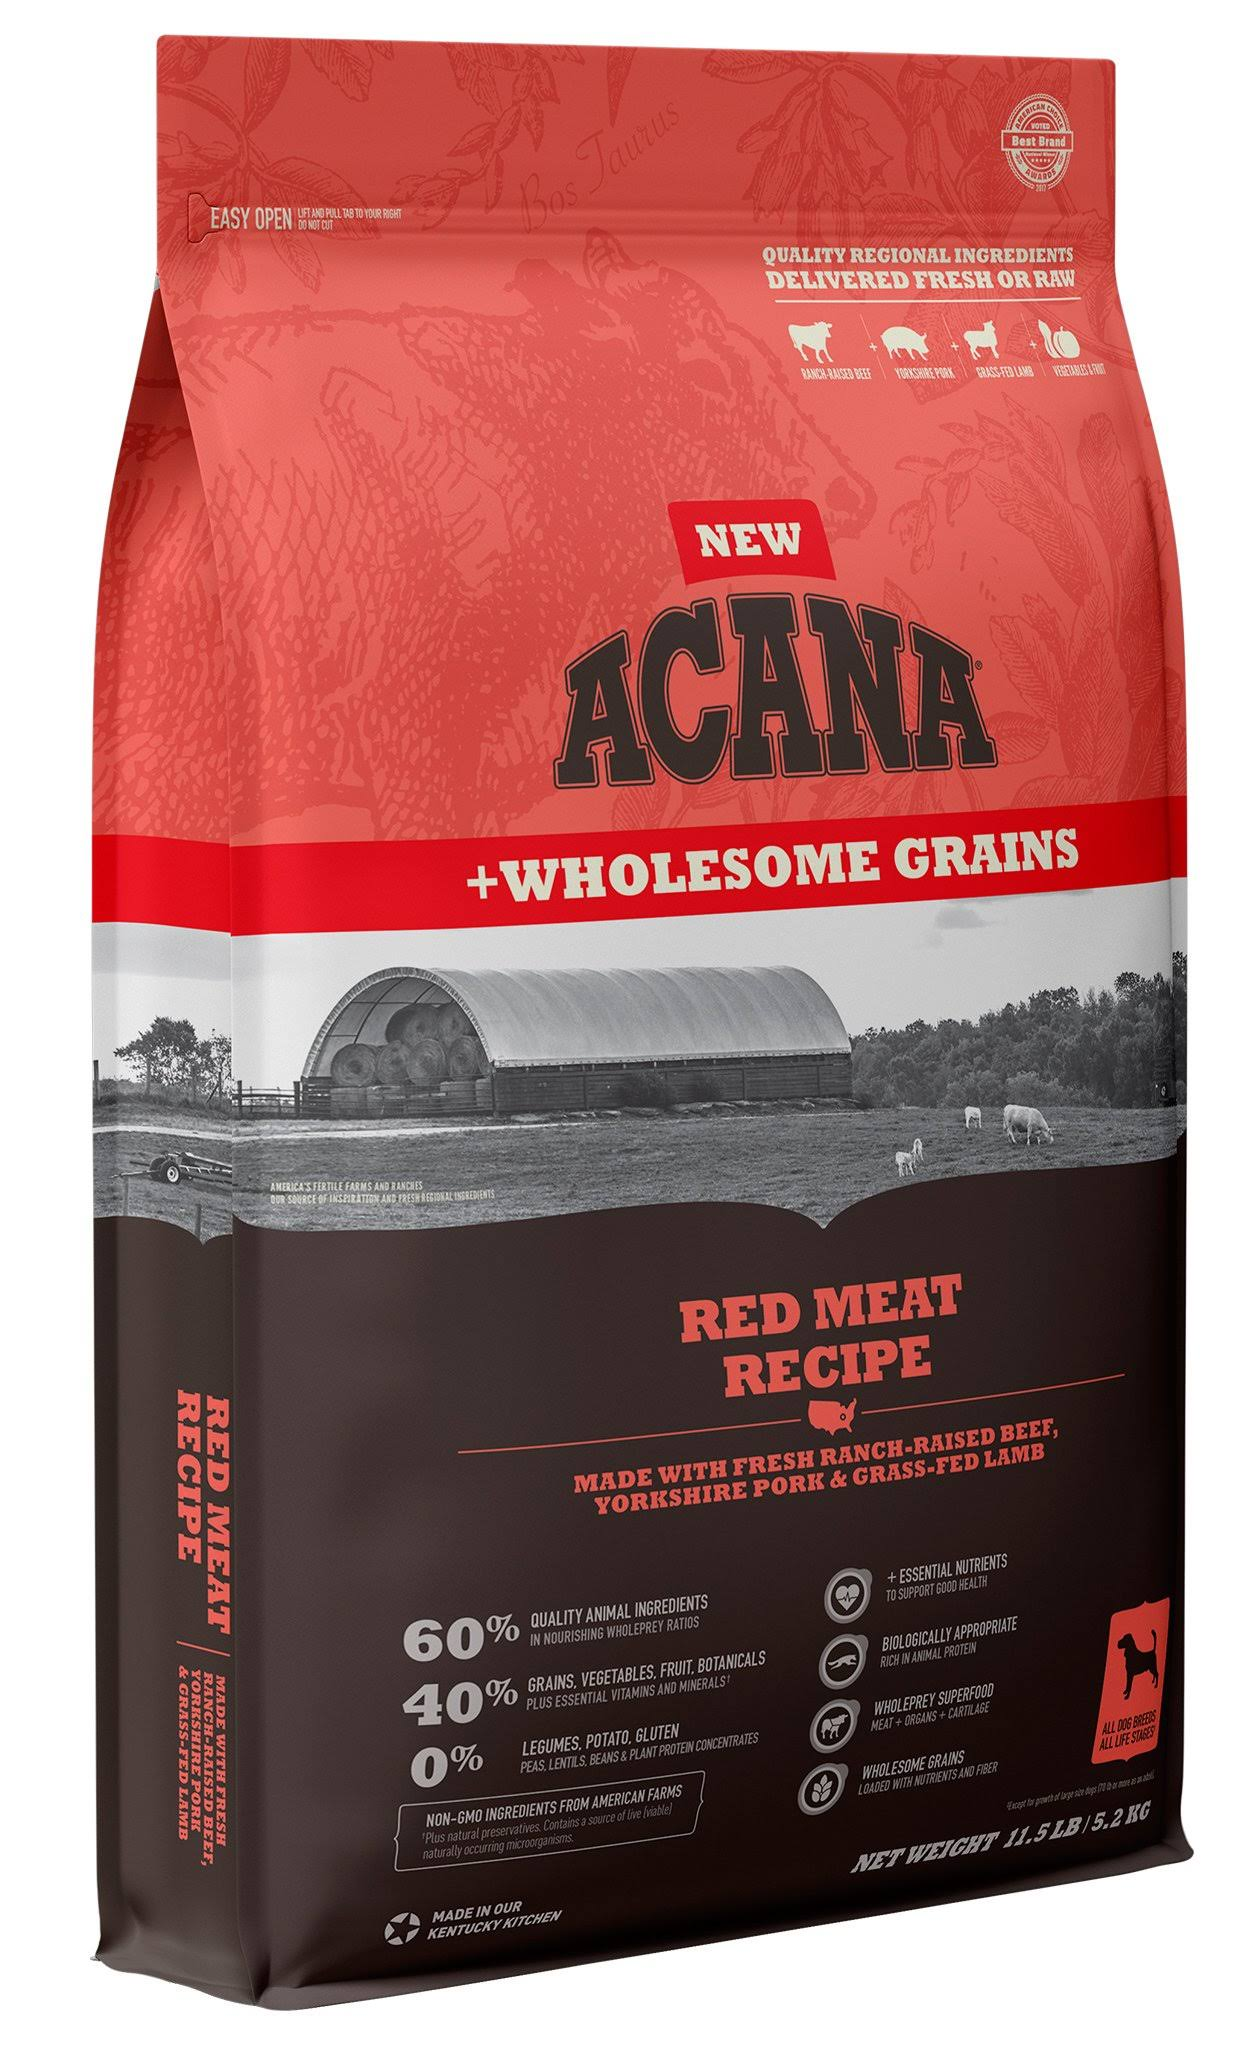 ACANA + Wholesome Grains Red Meat Recipe Dry Dog Food - 11.5 lb Bag